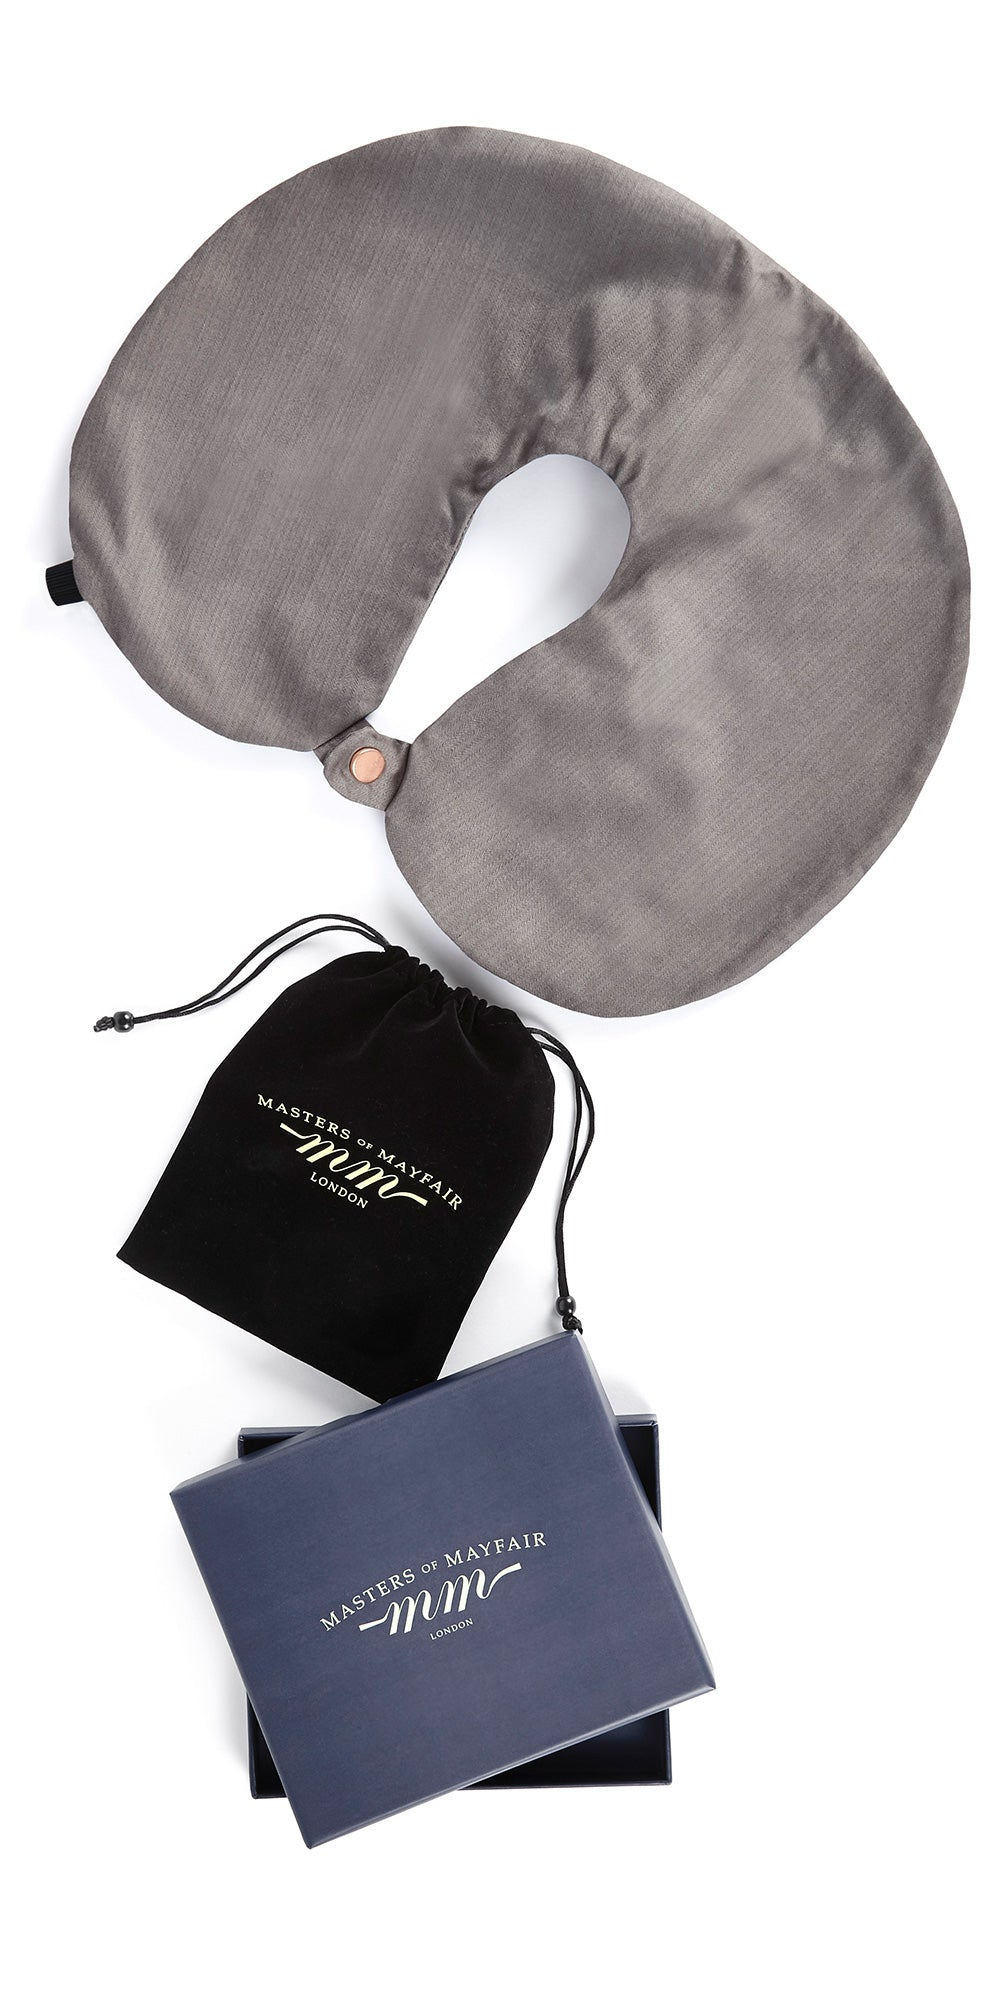 Our Range of Travel Pillows by Masters